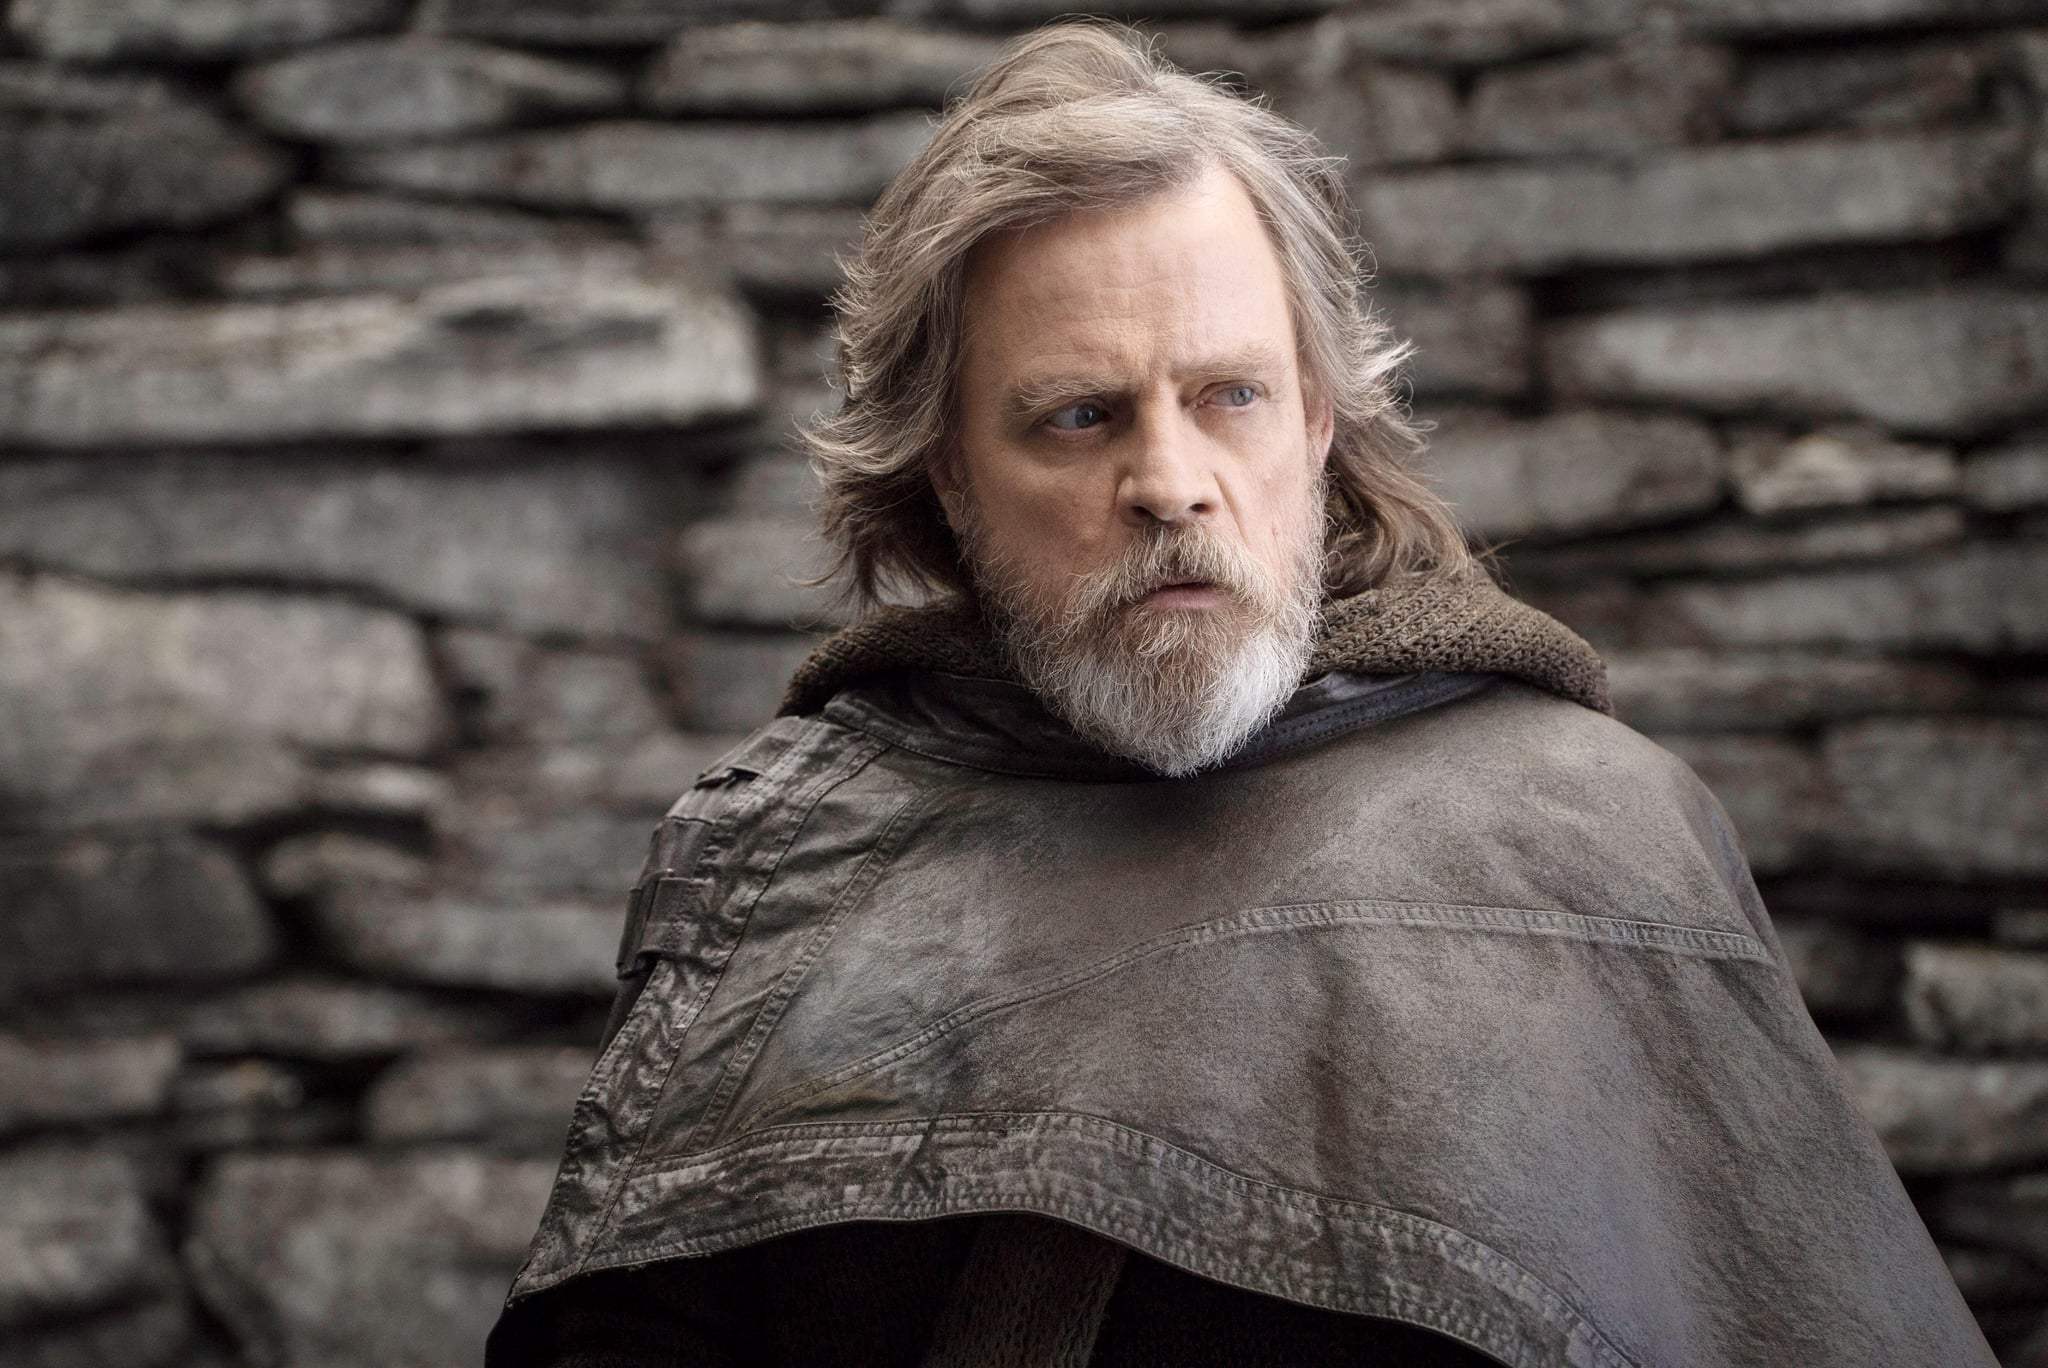 STAR WARS: THE LAST JEDI, (aka STAR WARS: EPISODE VIII - THE LAST JEDI), Mark Hamill, 2017. ph: John Wilson/ Walt Disney Studios Motion Pictures /  Lucasfilm Ltd. /Courtesy Everett Collection